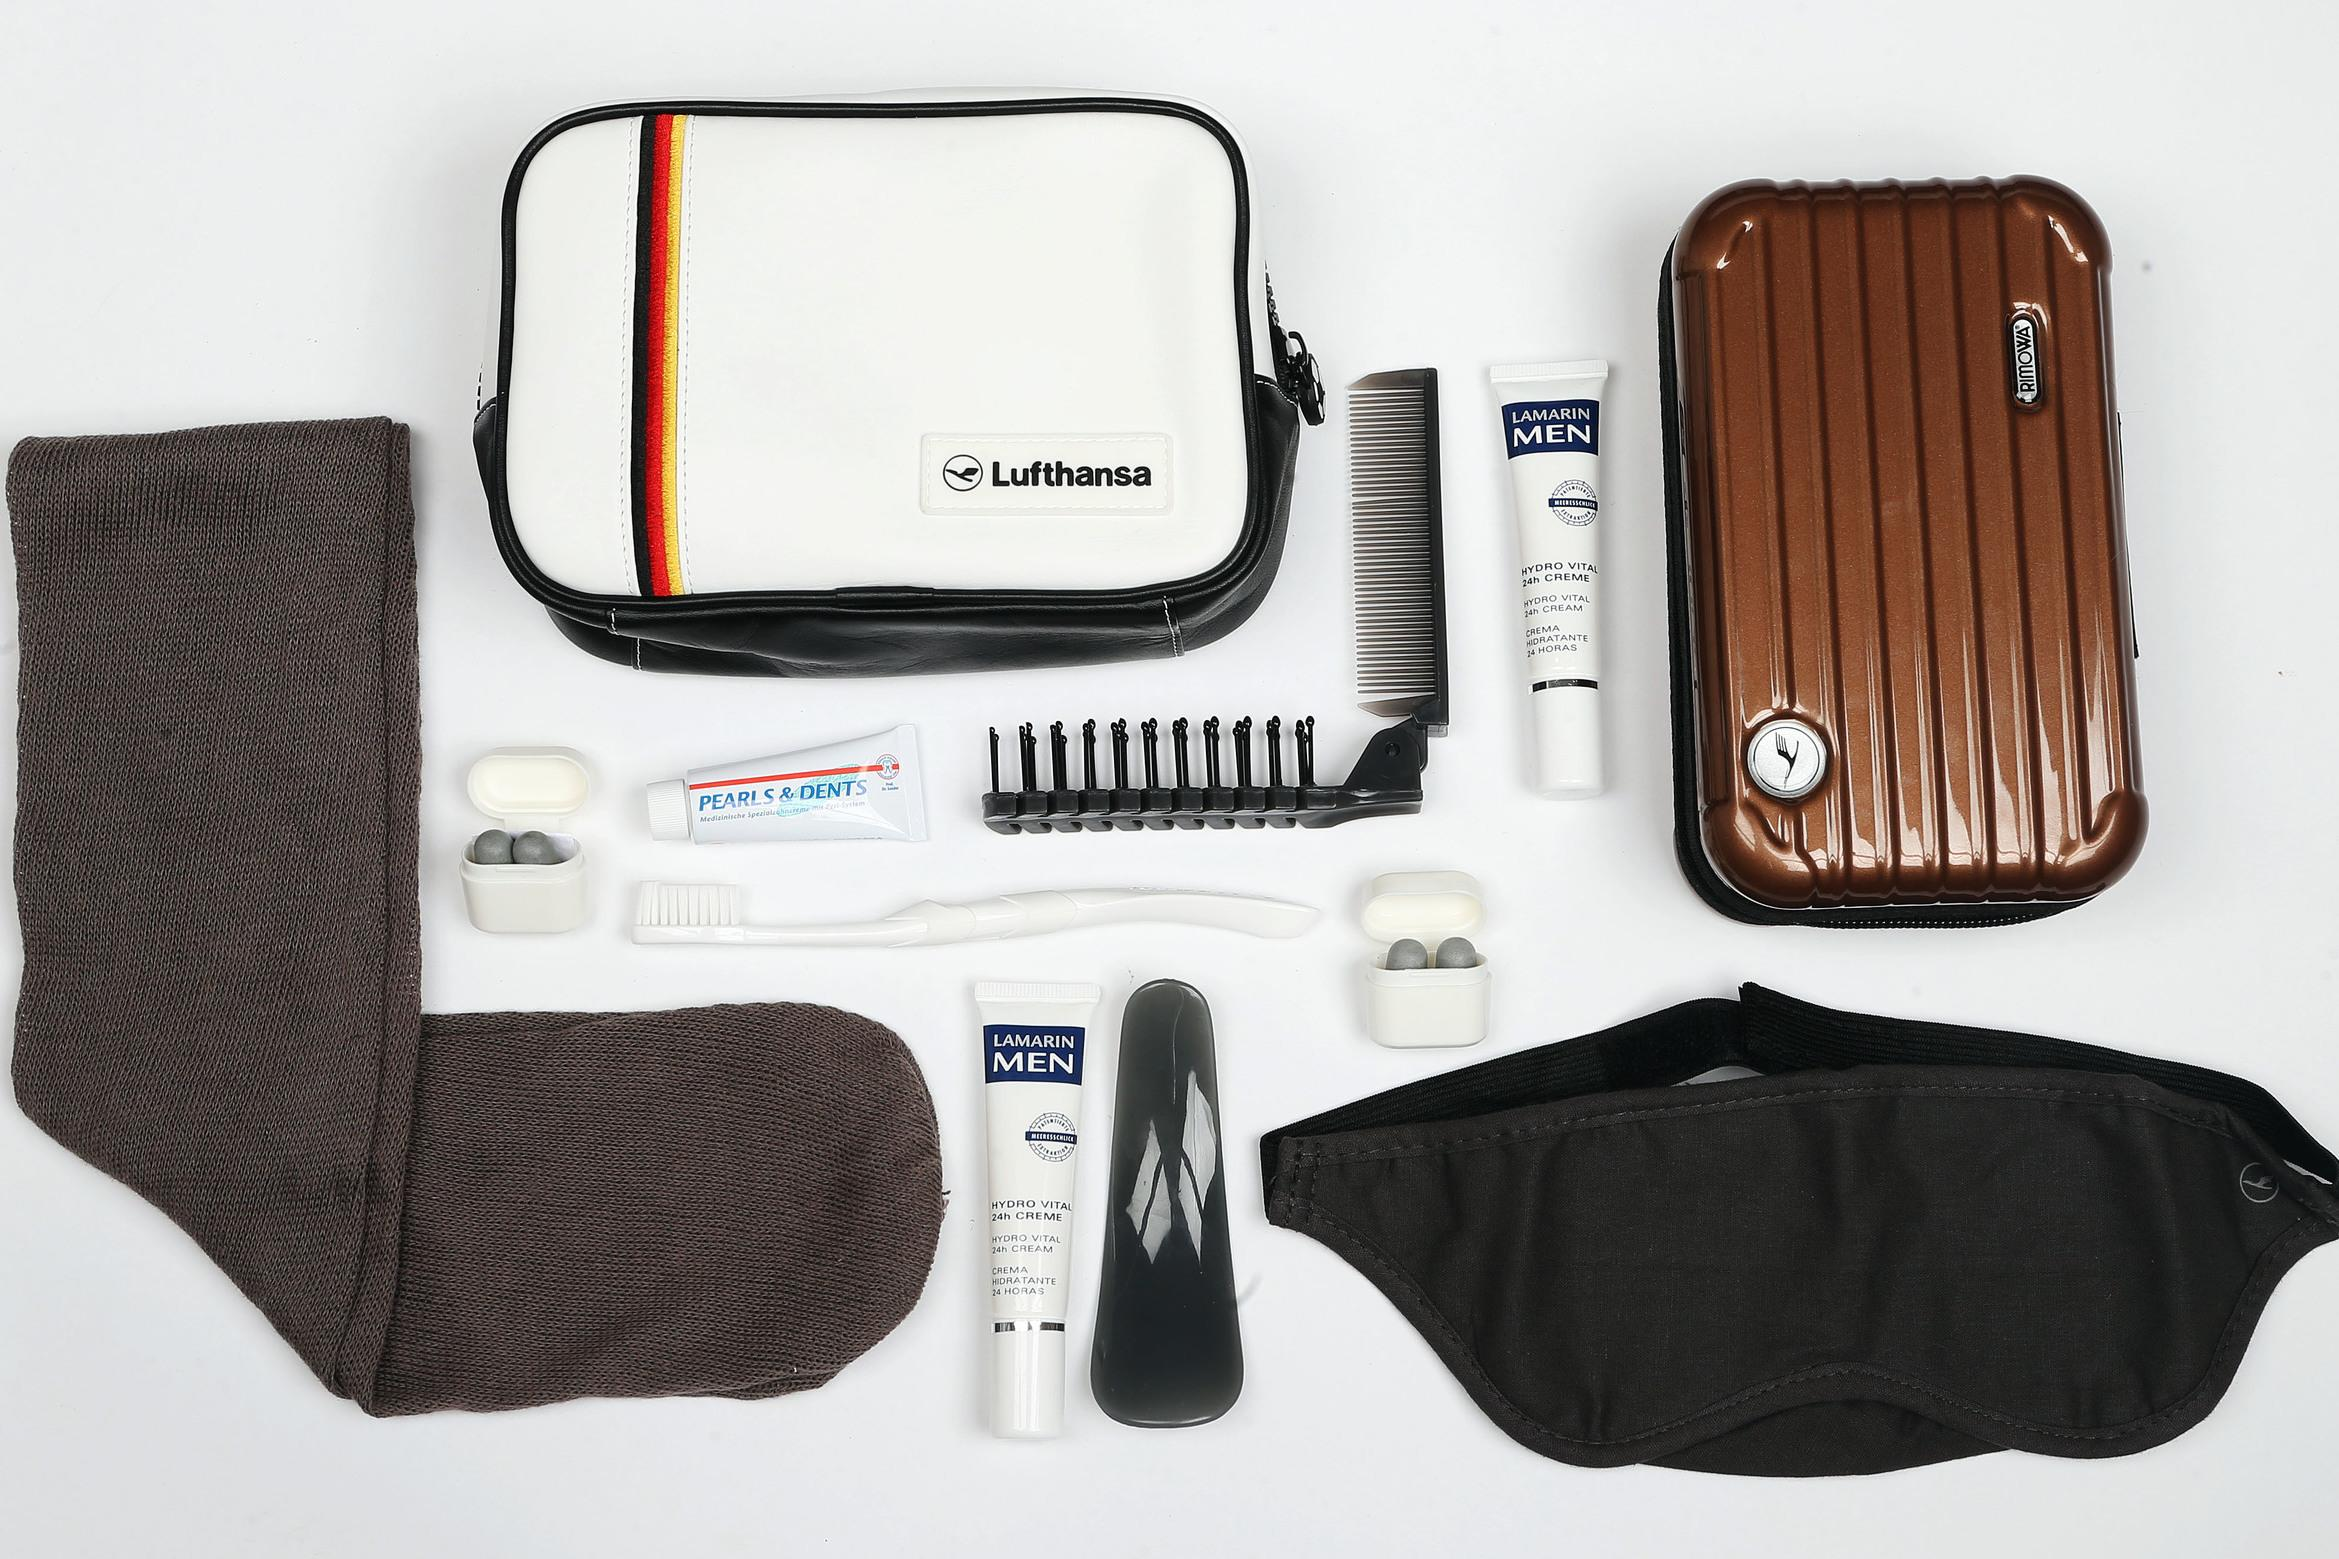 <p><strong>What do you get?</strong> Everything you might possibly need on a flight: Toothbrush, toothpaste, socks, moisturiser, foldable hairbrush/comb, shoe horn, ear plugs, eye mask<br /> <strong>Best bit of the kit?</strong> The bag with the German colours. It reminds us of the heady days of summer 2014 when Germany won the World Cup.</p>